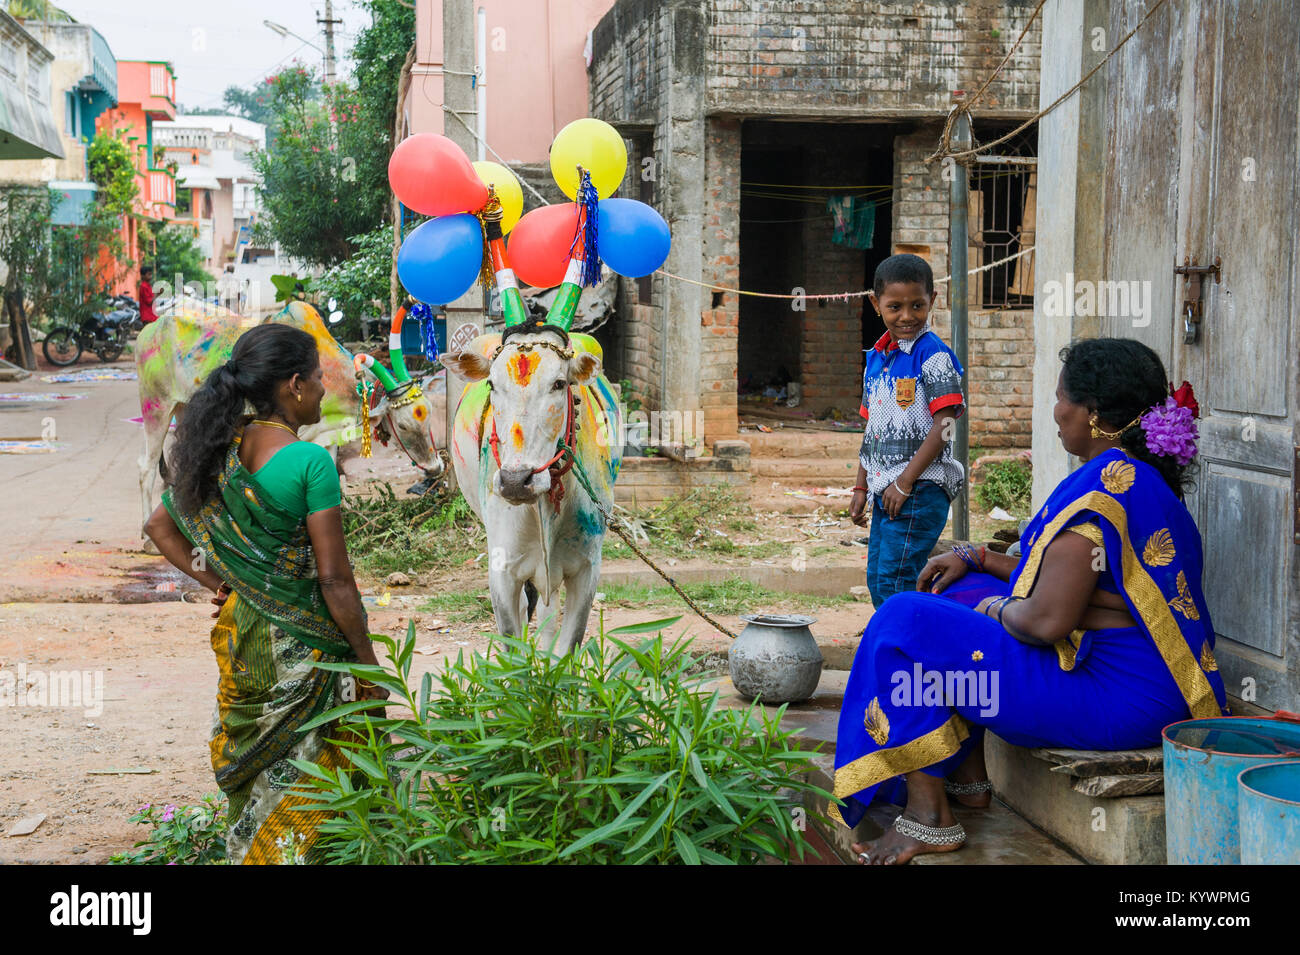 Tamil Nadu, India. 16th Jan, 2018. Pongal, the harvest festival dedicated to the sun, celebrated in the village - Stock Image